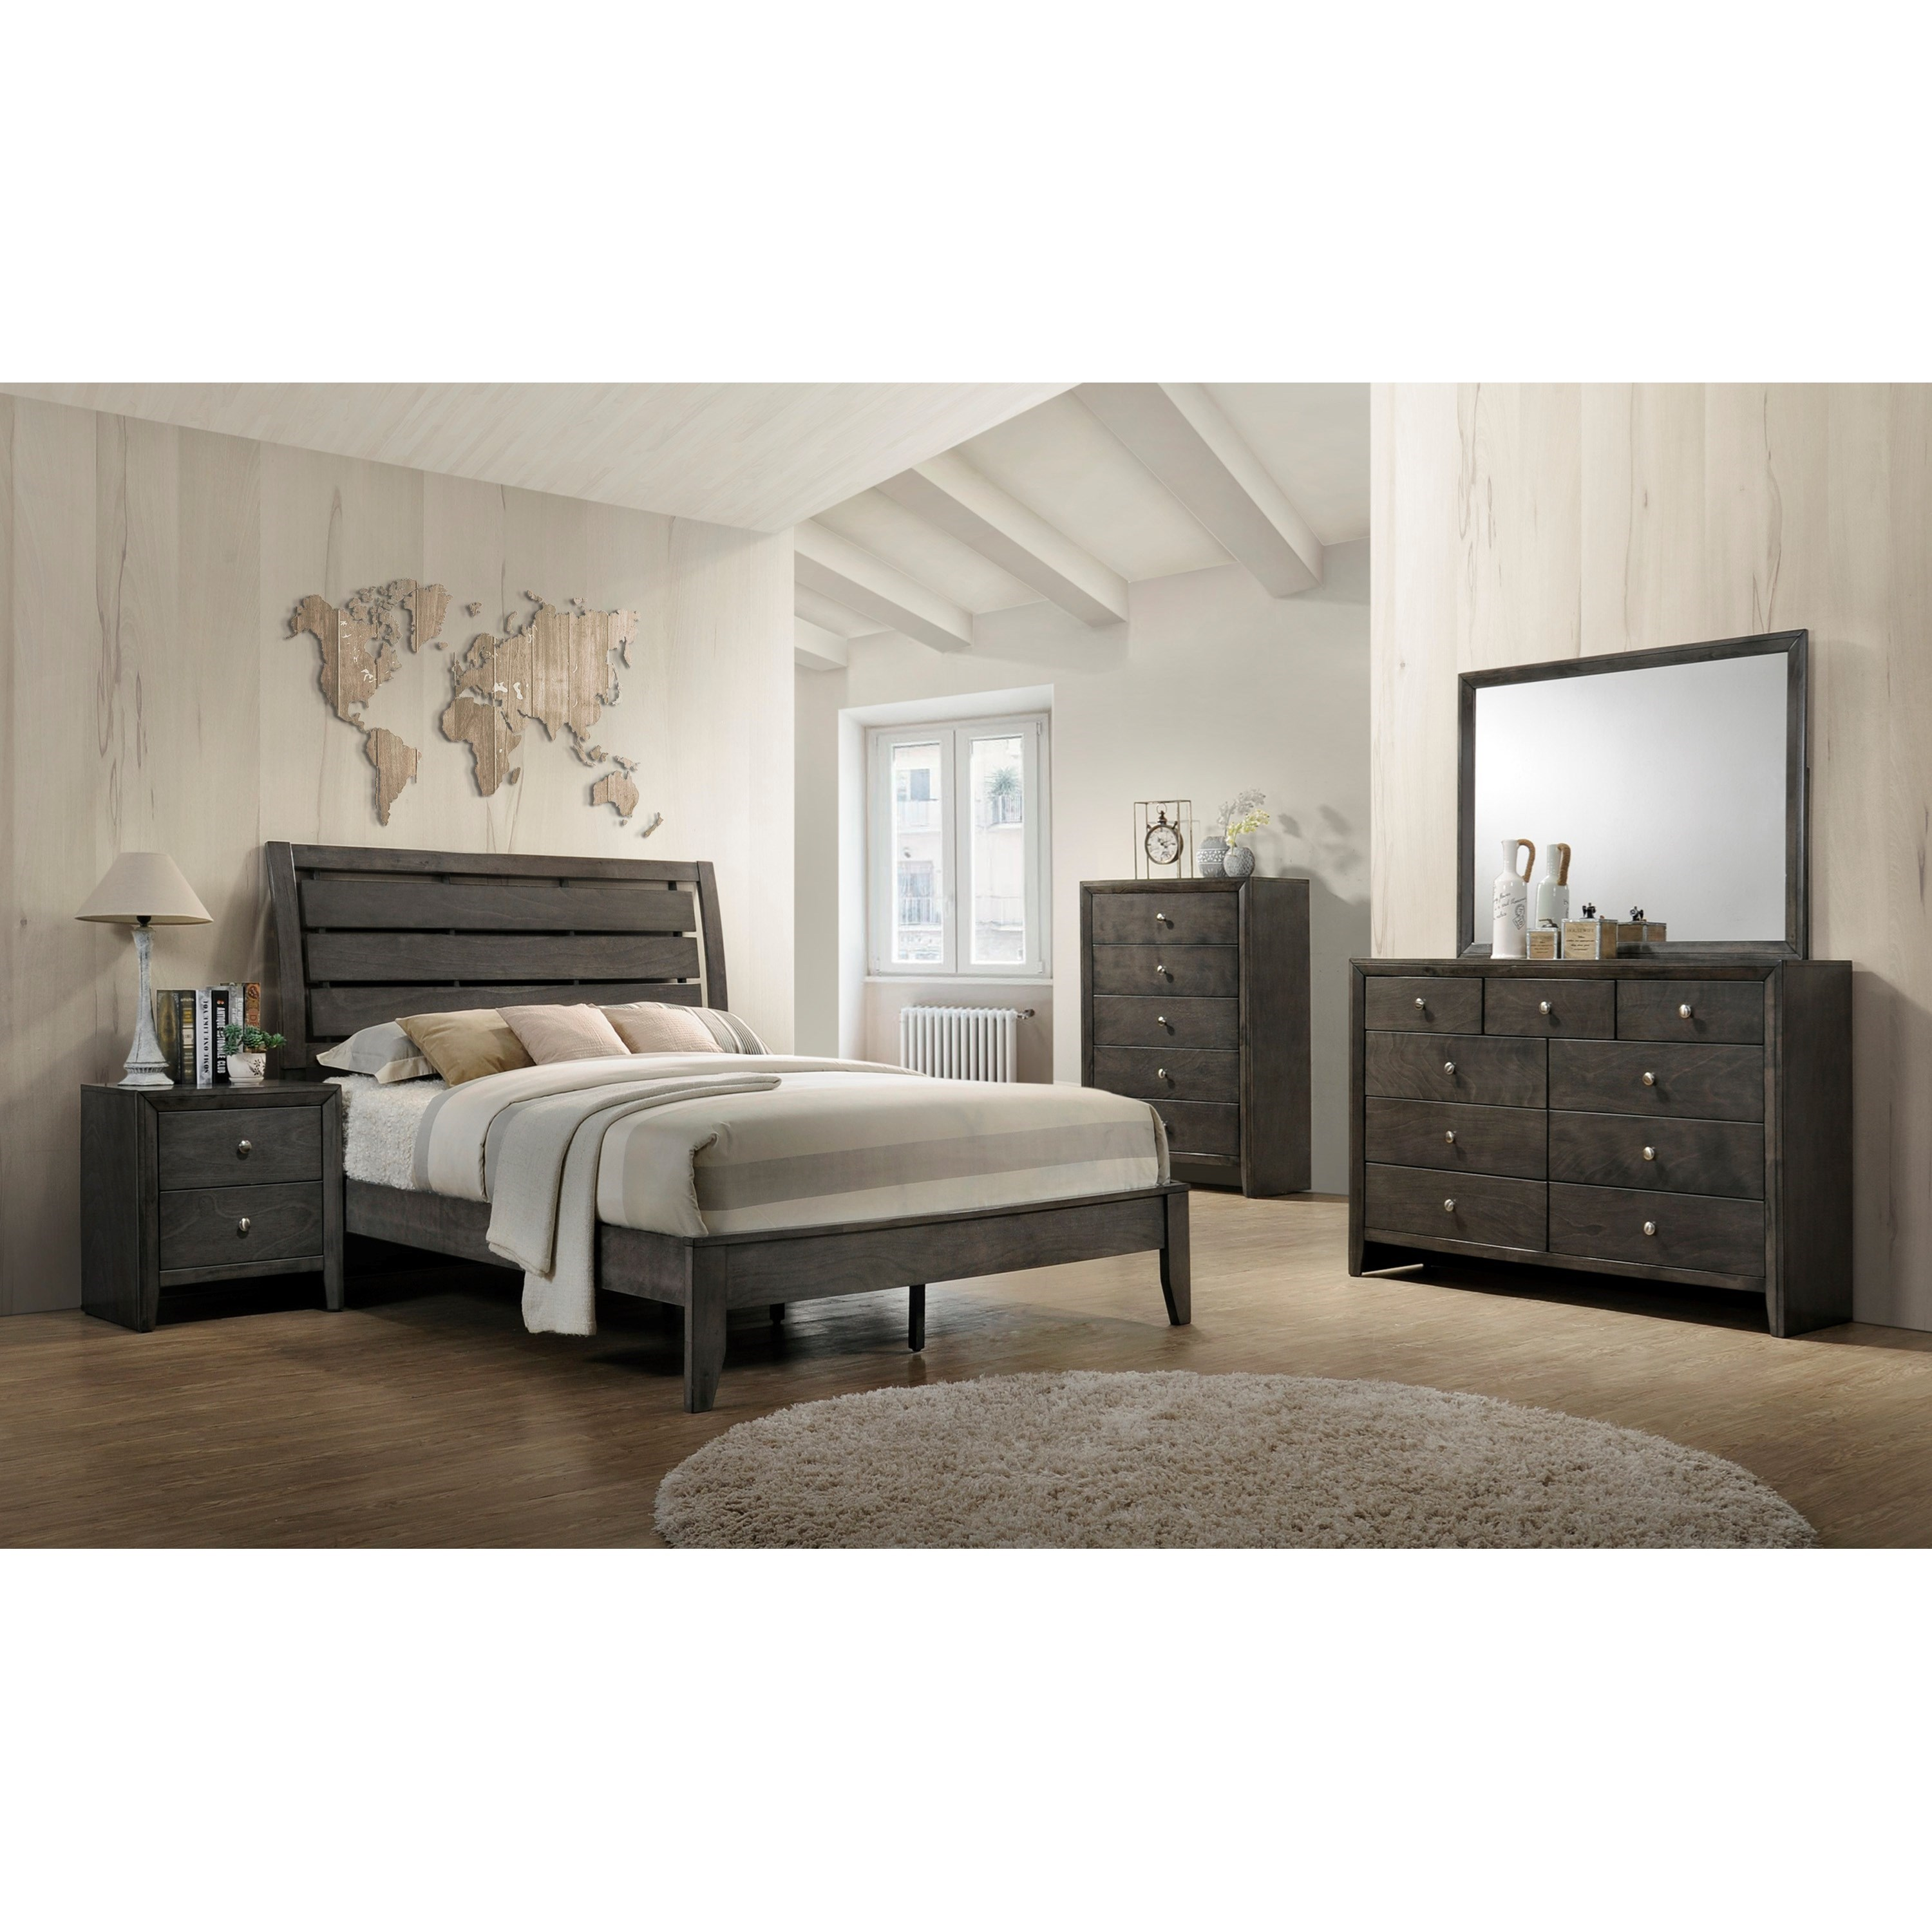 Evan Twin Bedroom Group by Crown Mark at Northeast Factory Direct